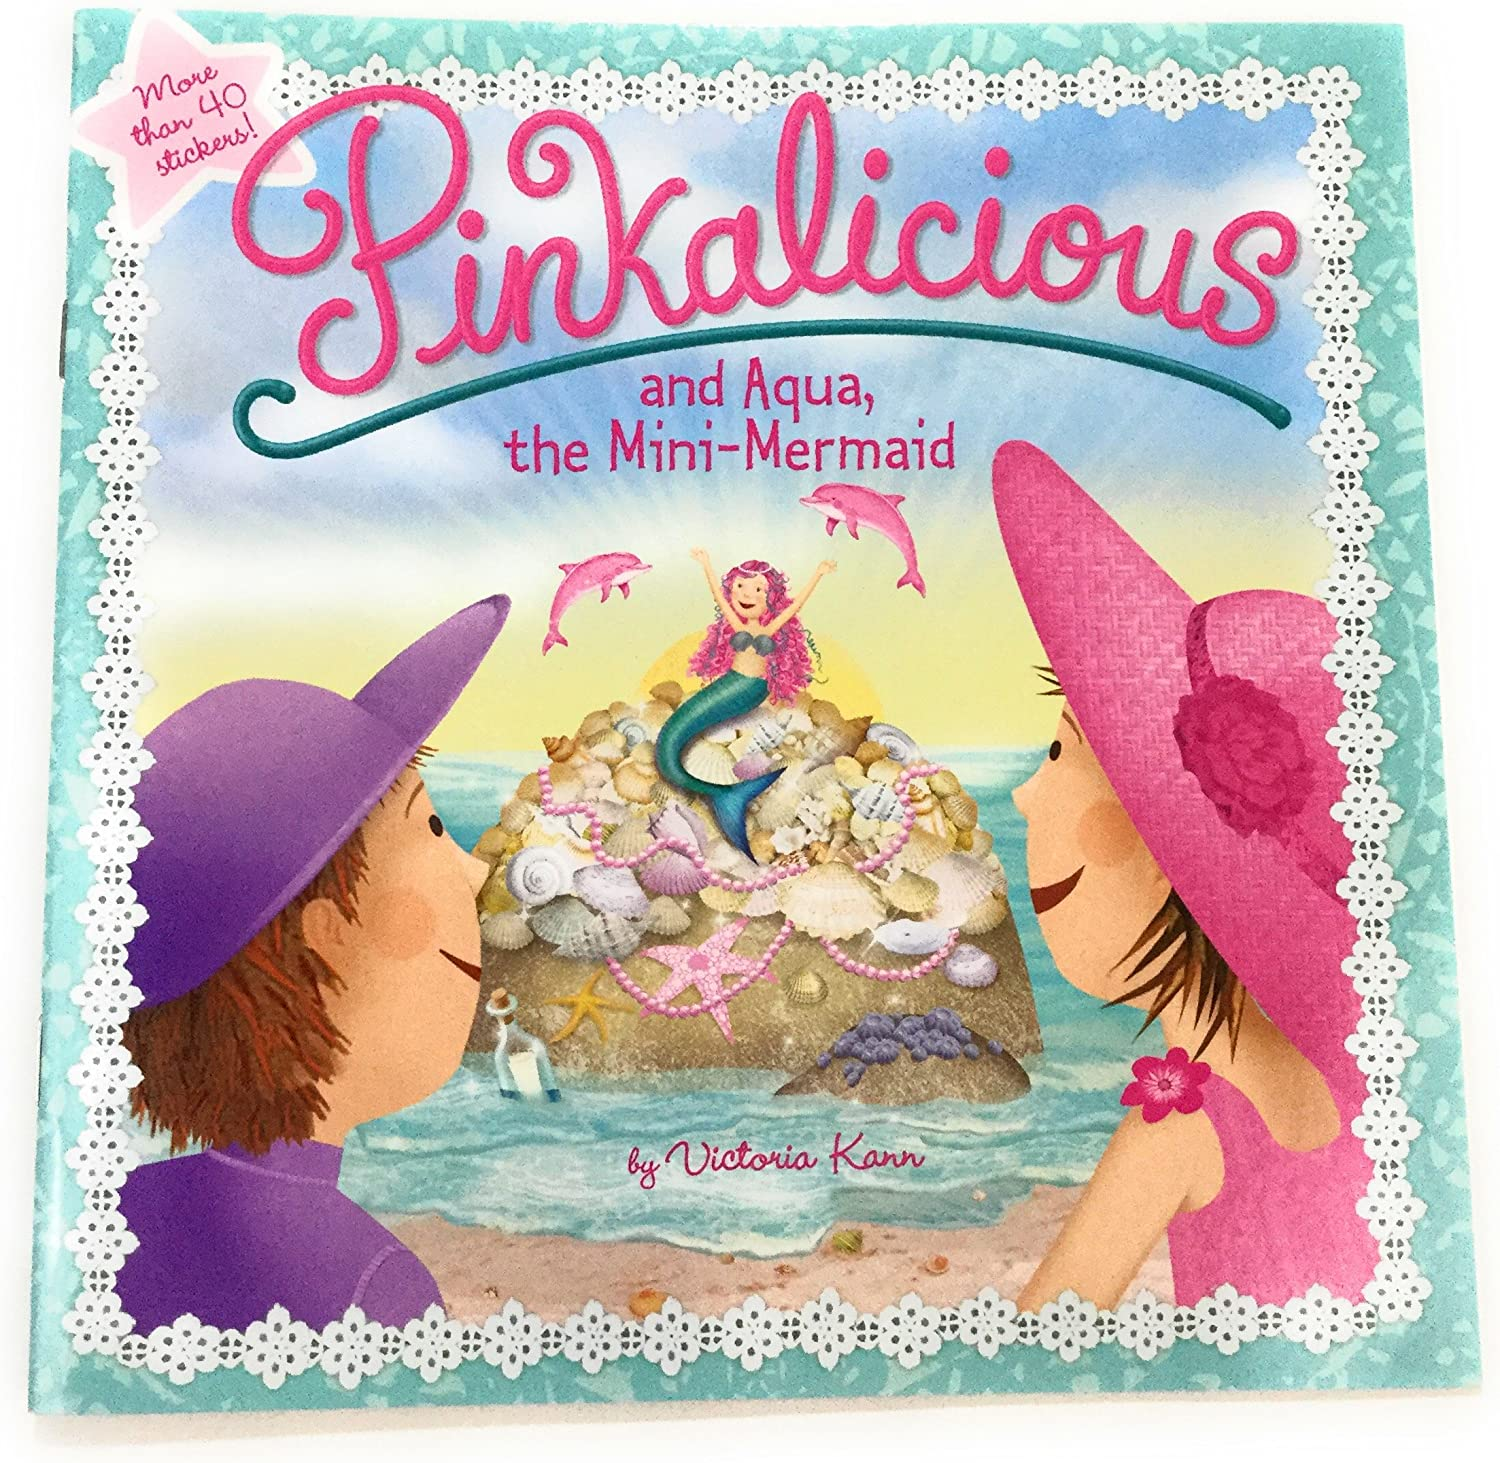 The Mini-Mermaid Book w//Stickers /& Gift Tag for Girls who Love Mermaid Adventures Ganz Girls Mermaid Doll Marlowe with Pinkalicious and Aqua